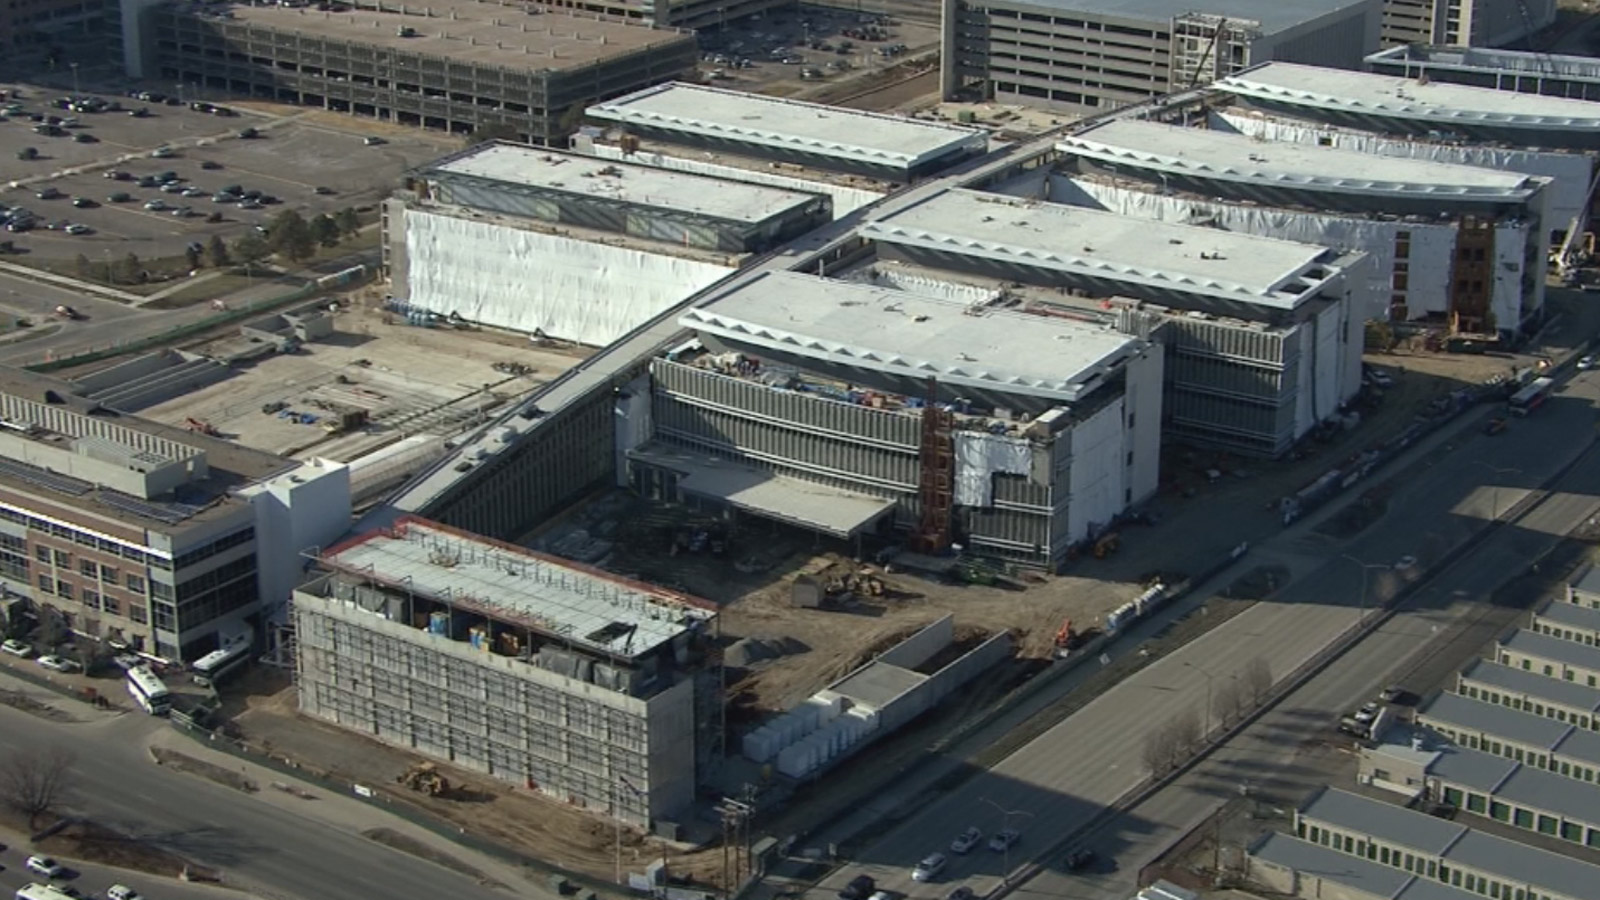 Copter4 flew over the VA Hospital under construction in Aurora (credit: CBS)